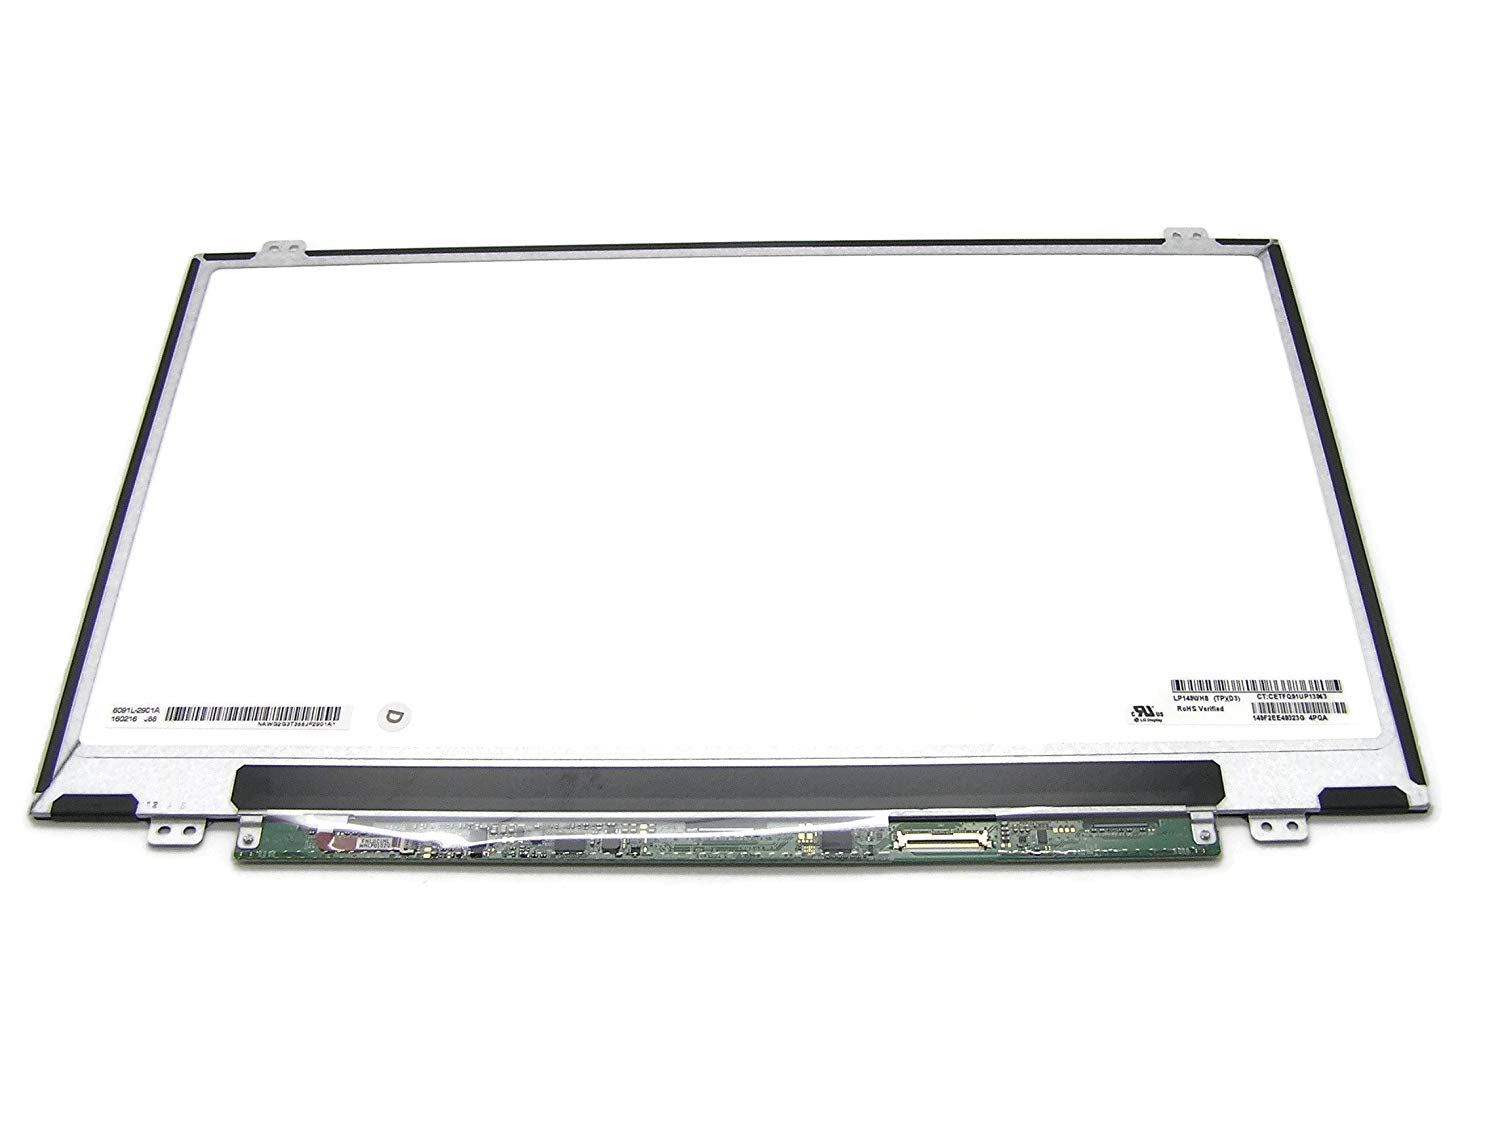 Lenovo -LP156WF7-SPP2 LCD SCREEN WITH 00UR897